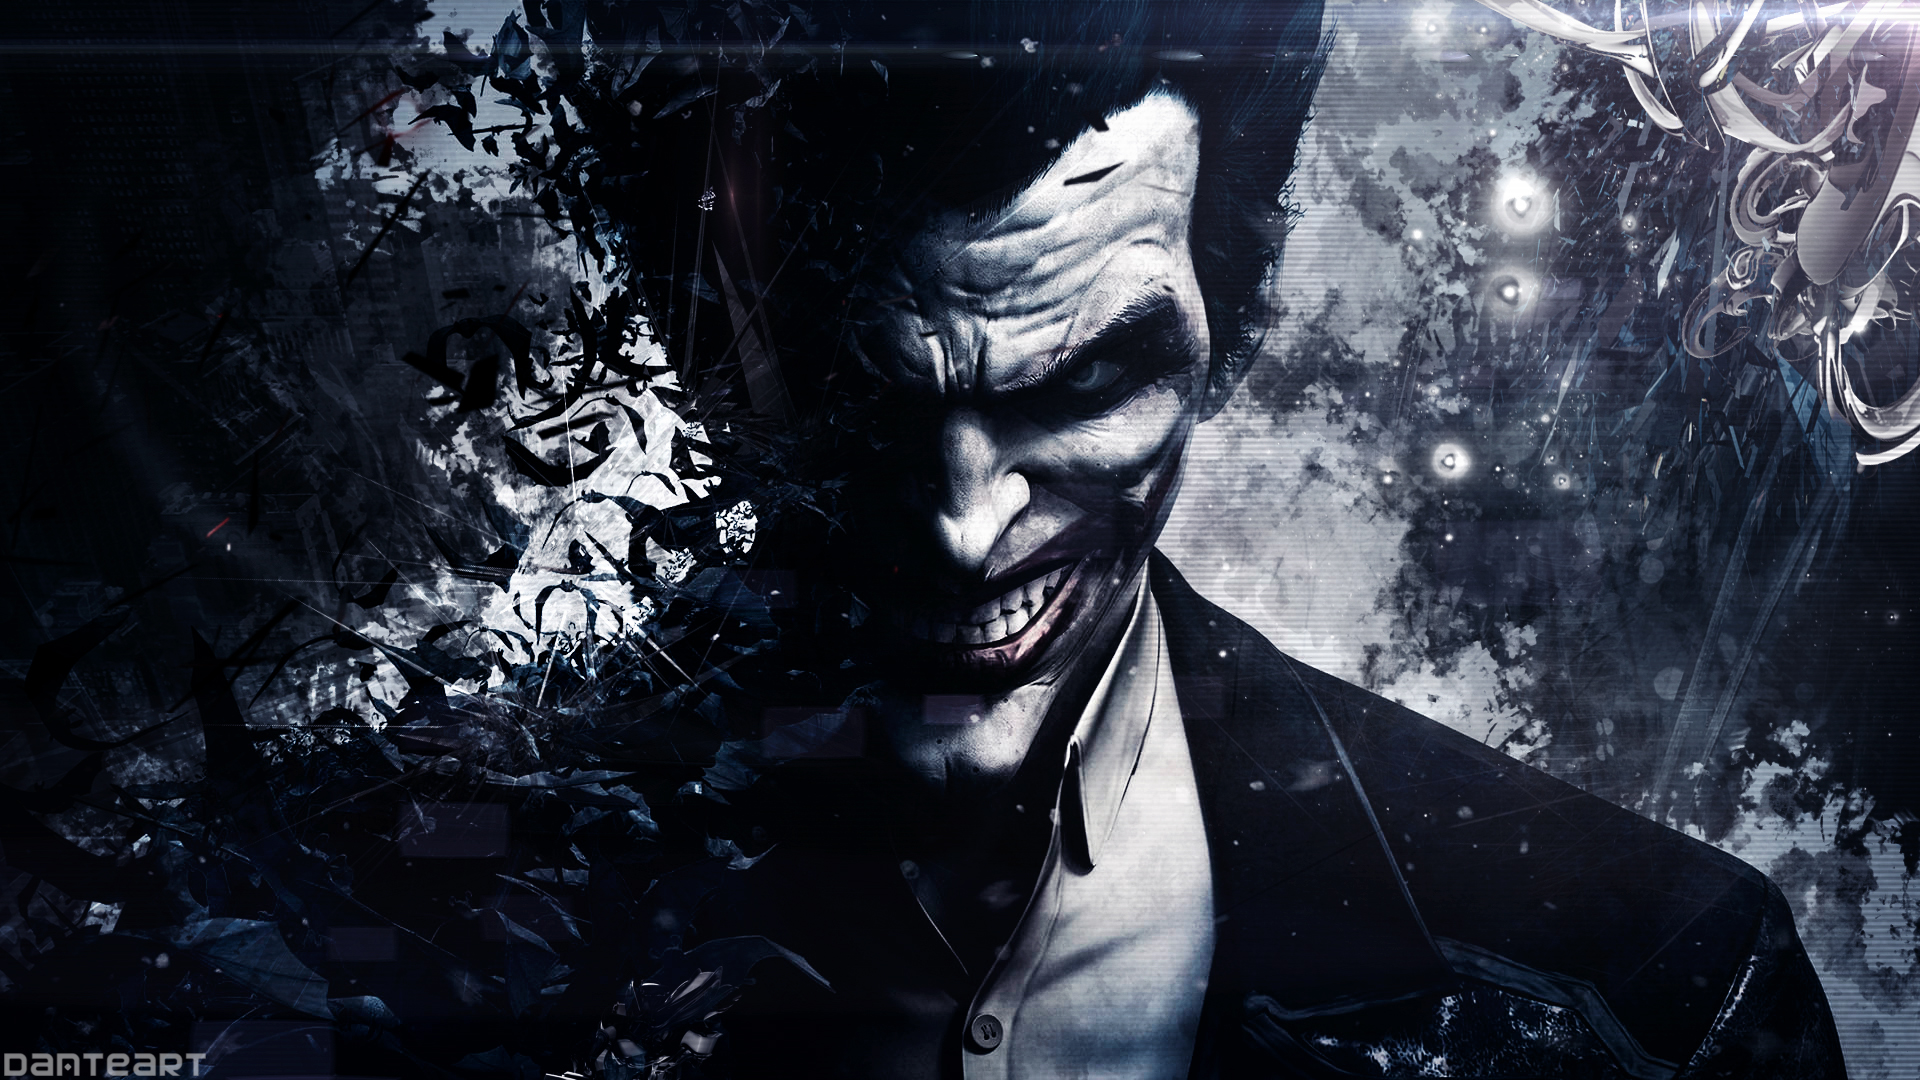 arkham origins joker wallpaper by danteartwallpapers fan art wallpaper 1920x1080